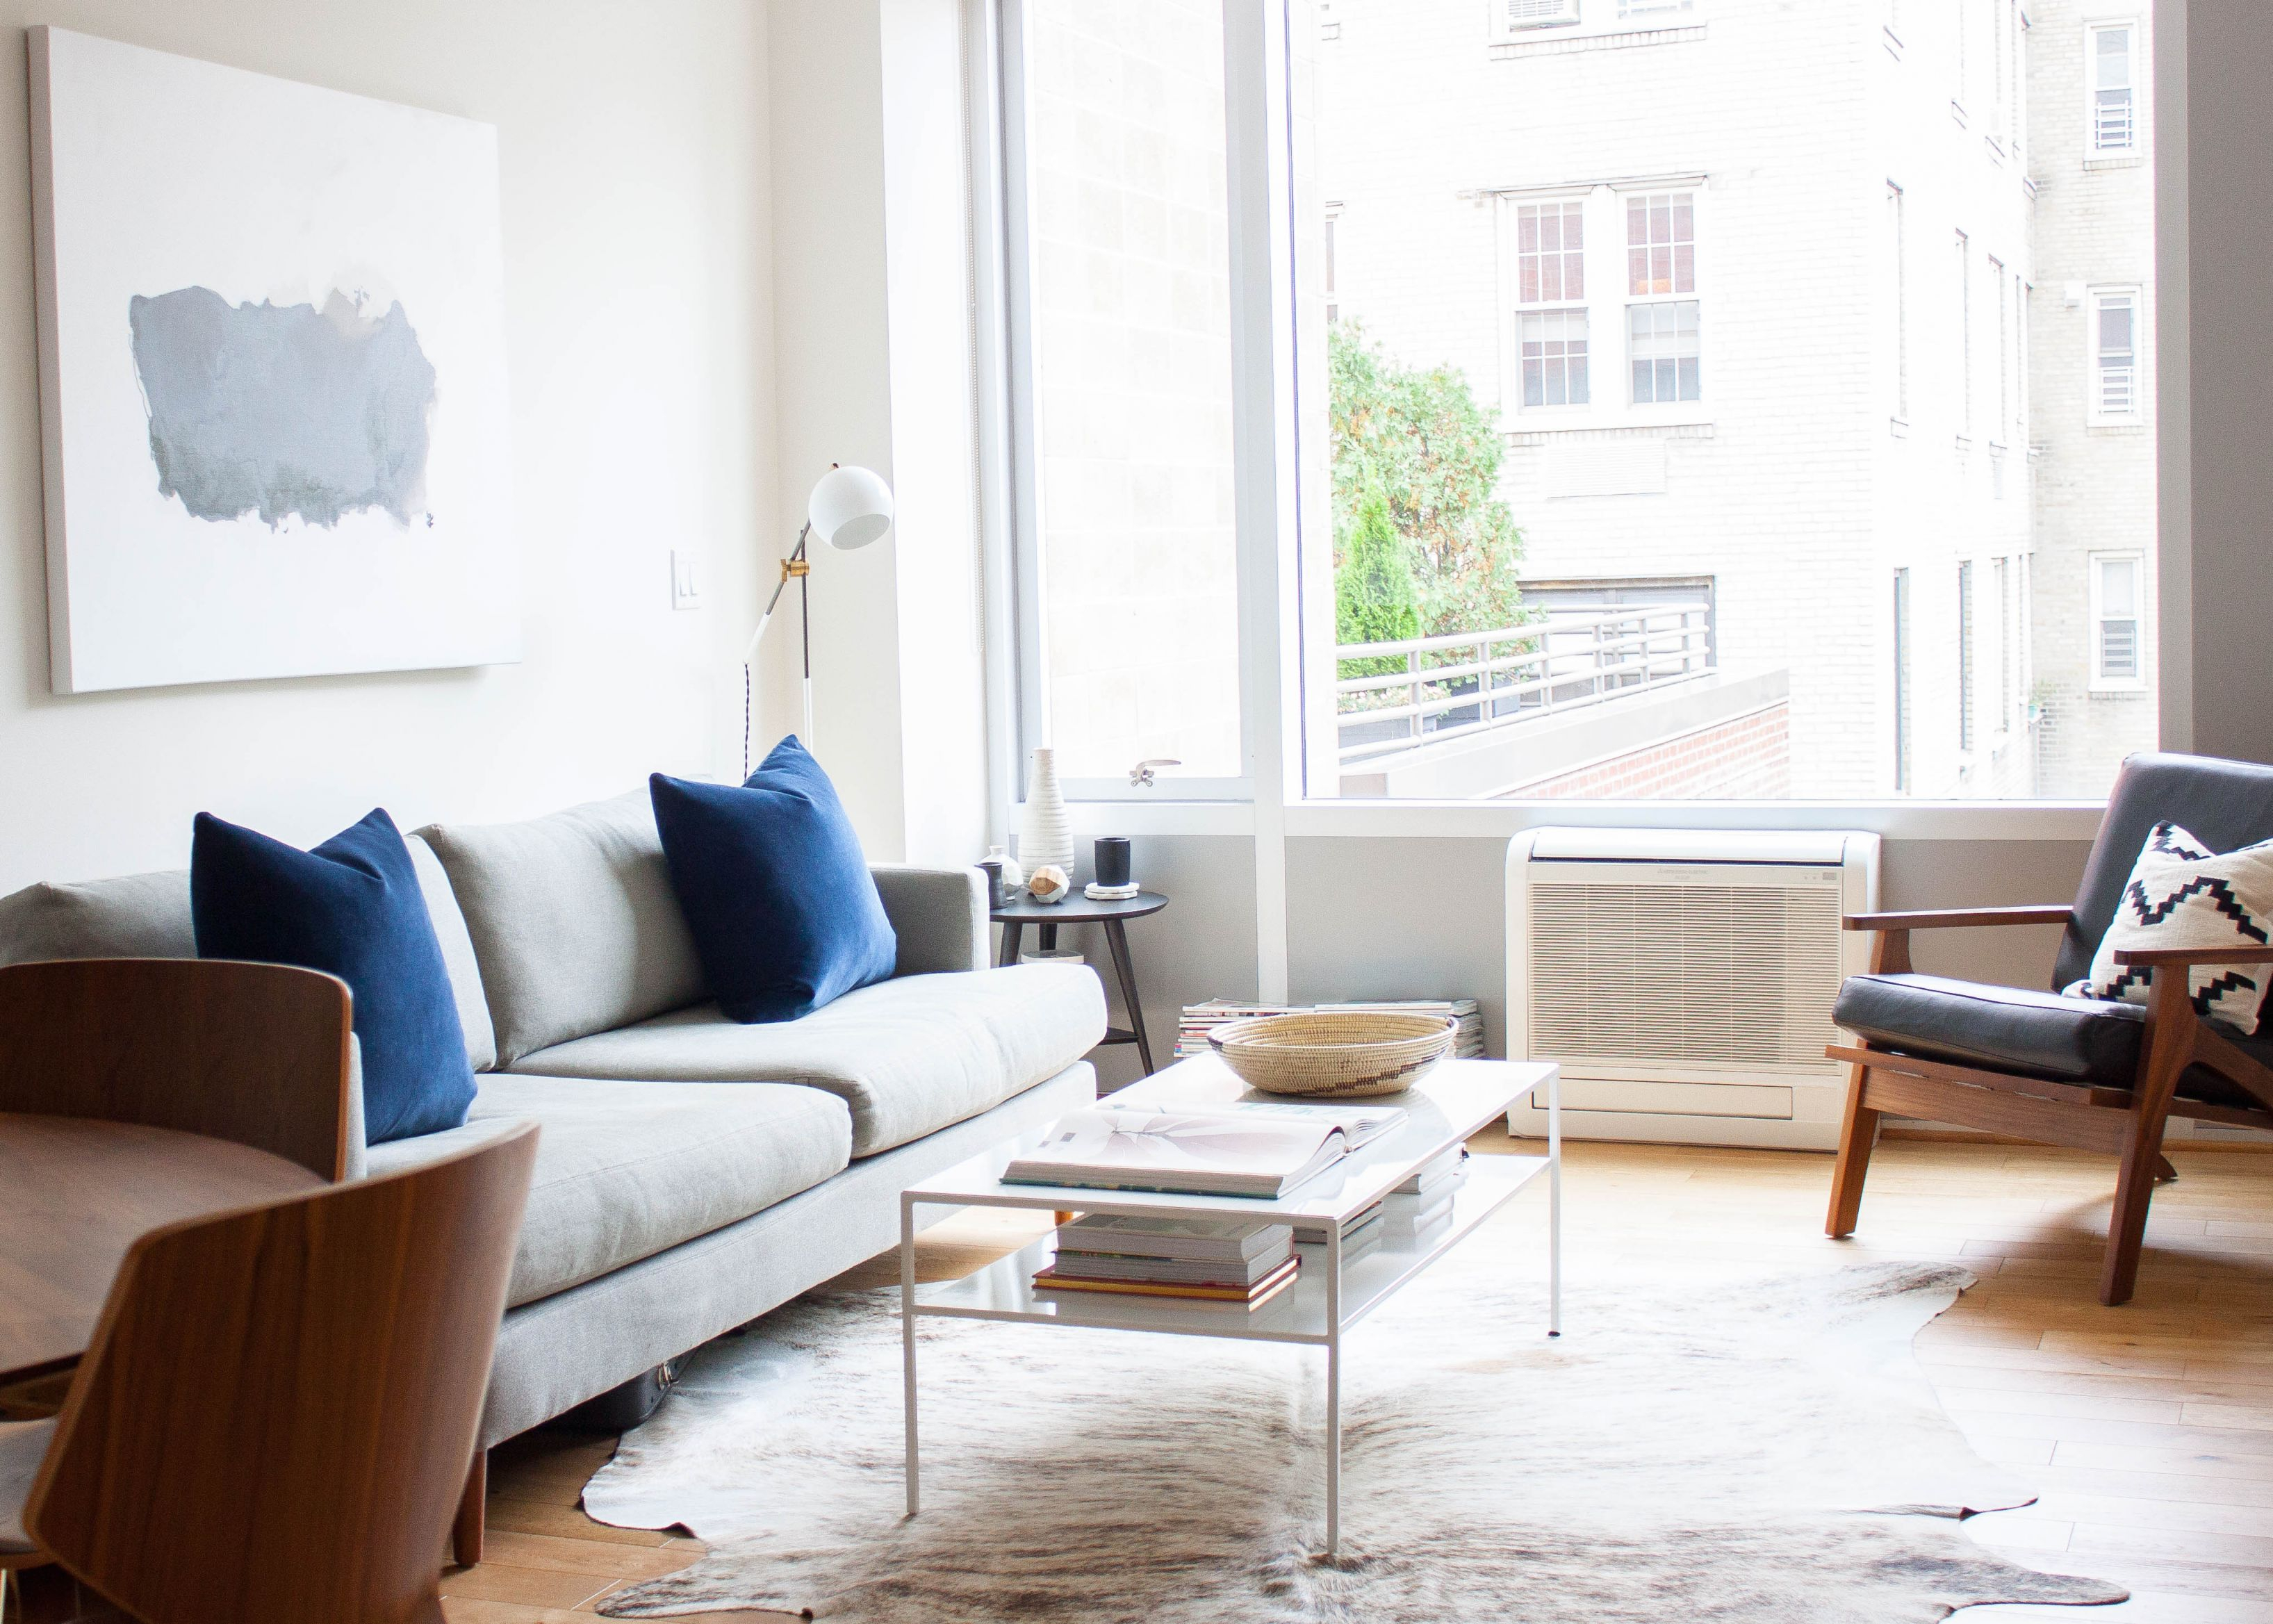 Best Small Living Room Design Ideas | Apartment Therapy in Unique Small Living Room Furniture